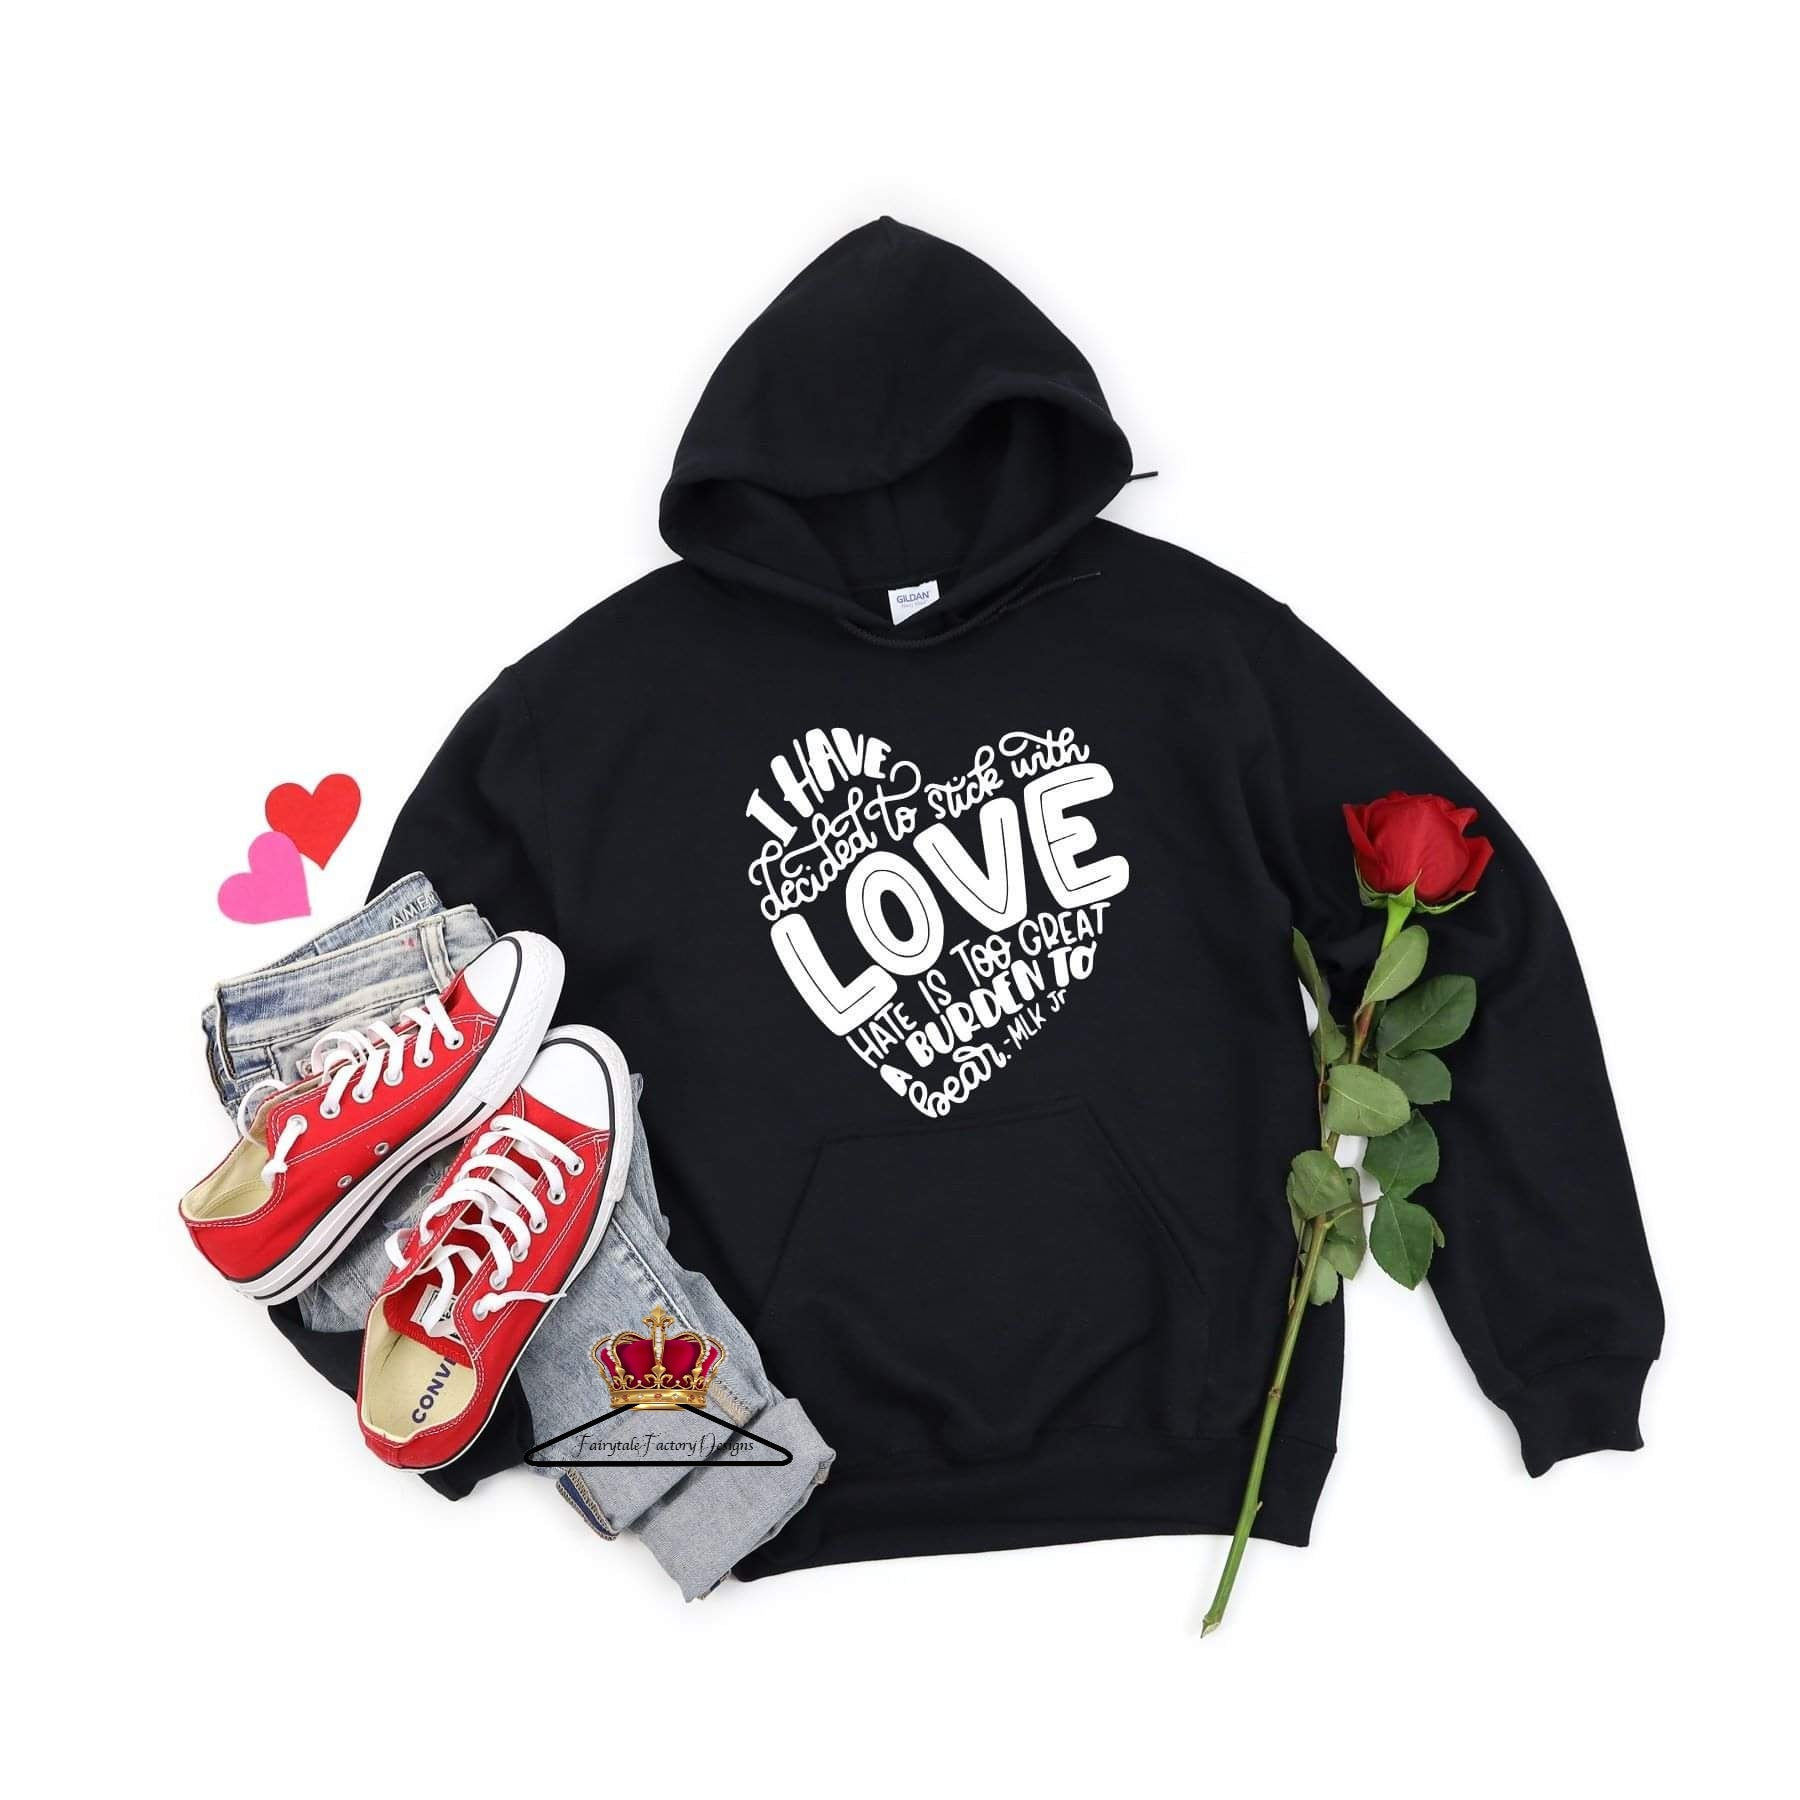 Mlk love children's tee  (hoodies temporarily unavailable in childrens sizes)